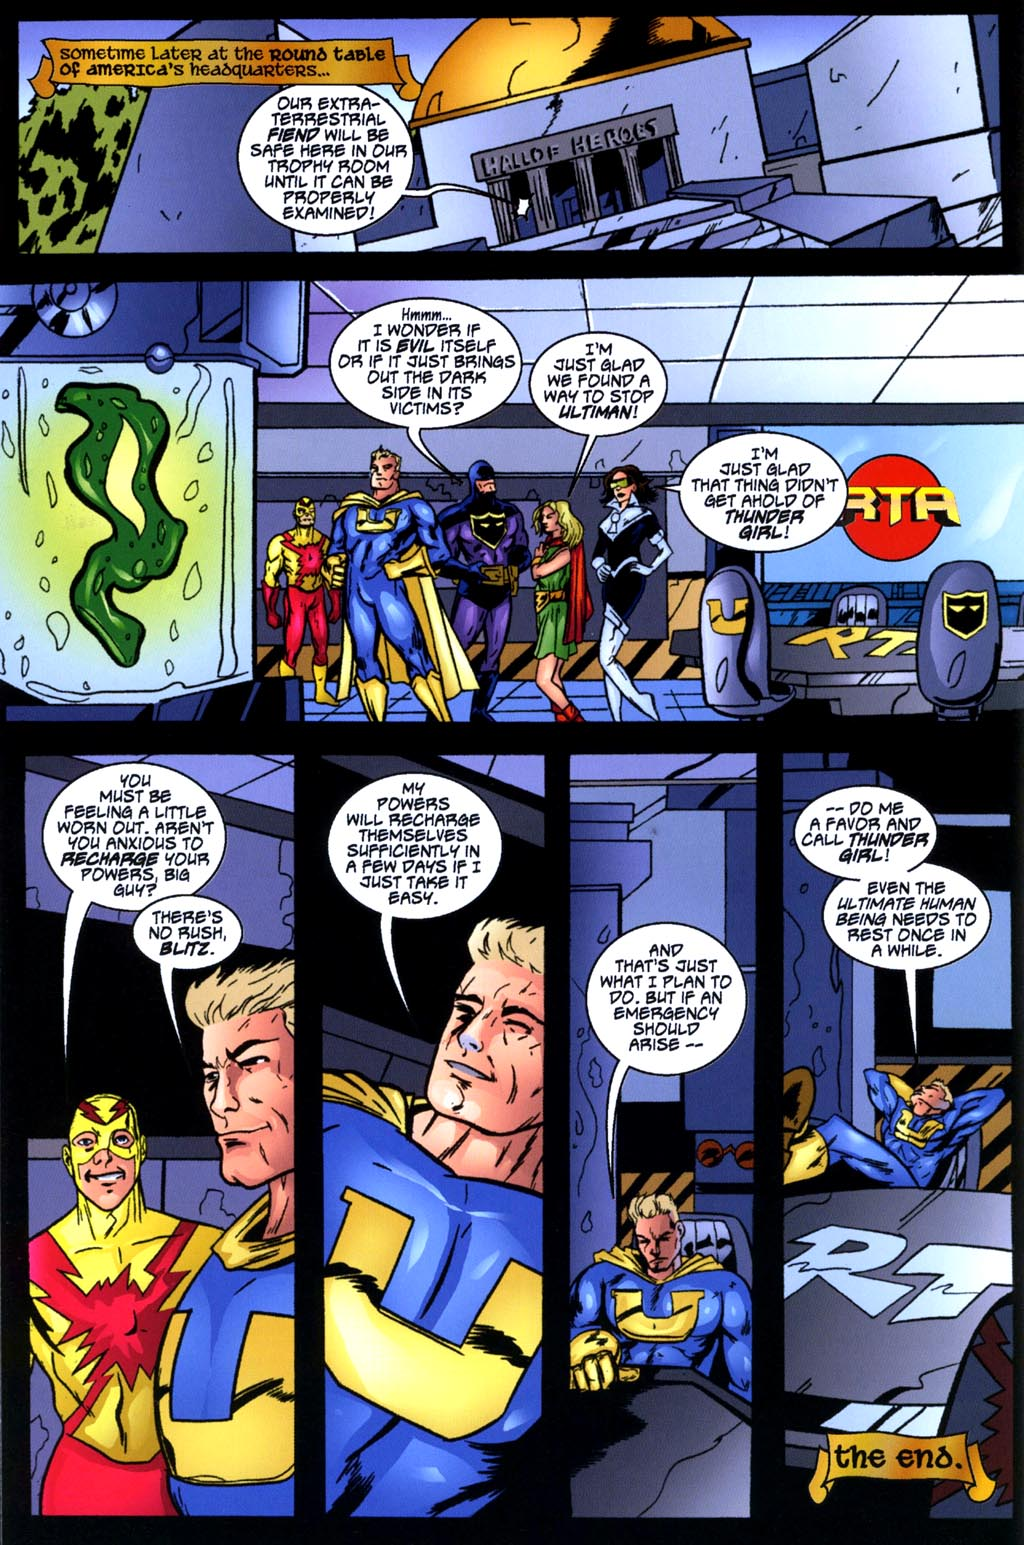 Read online Big Bang: Round Table of America comic -  Issue # Full - 26